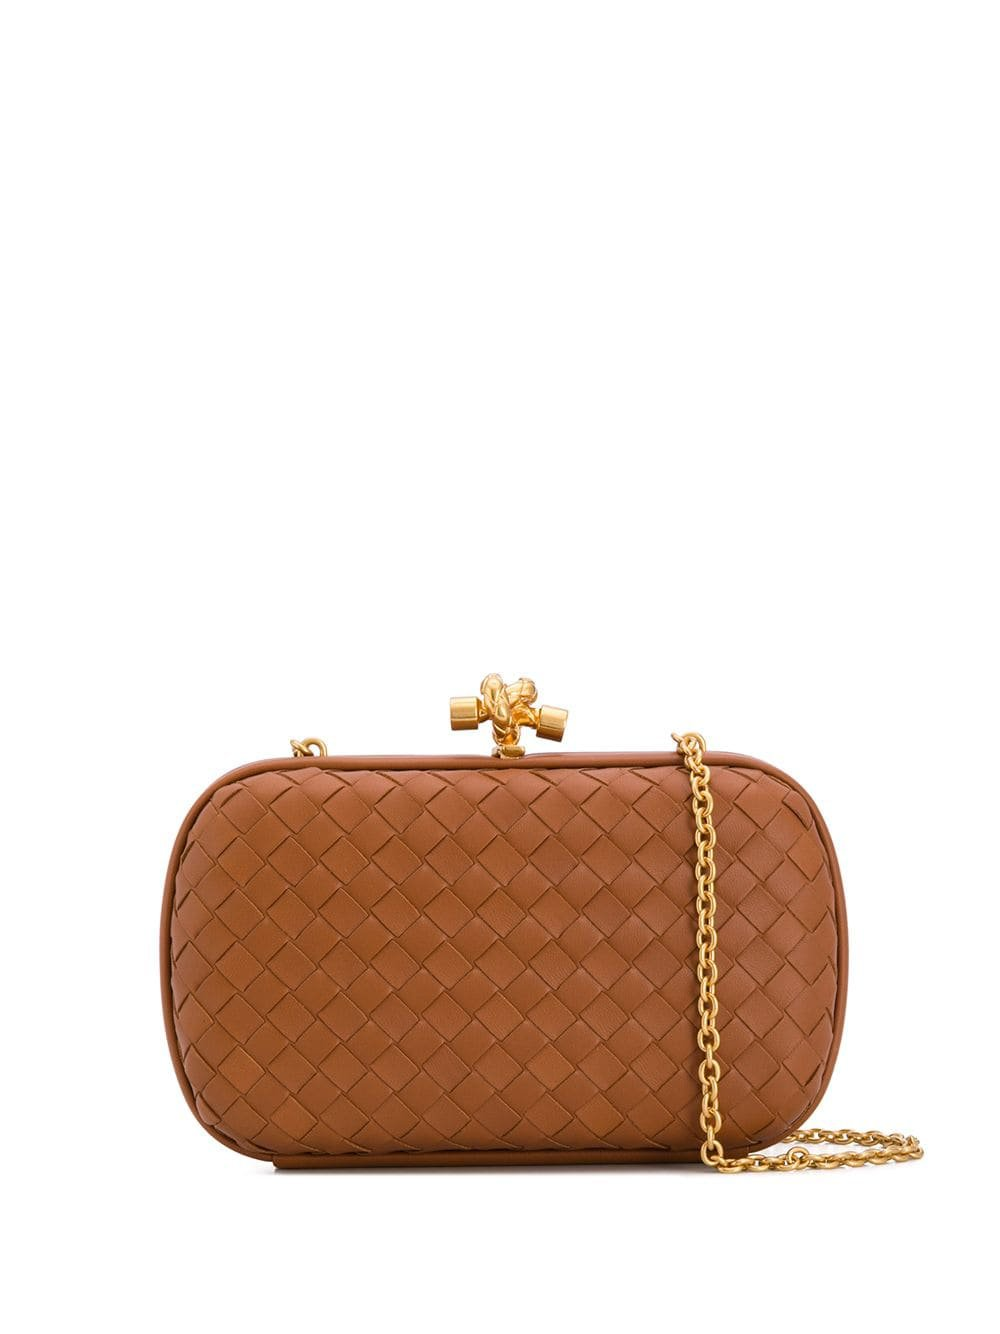 Bottega Veneta Knotted Chain Intrecciato Clutch - Farfetch